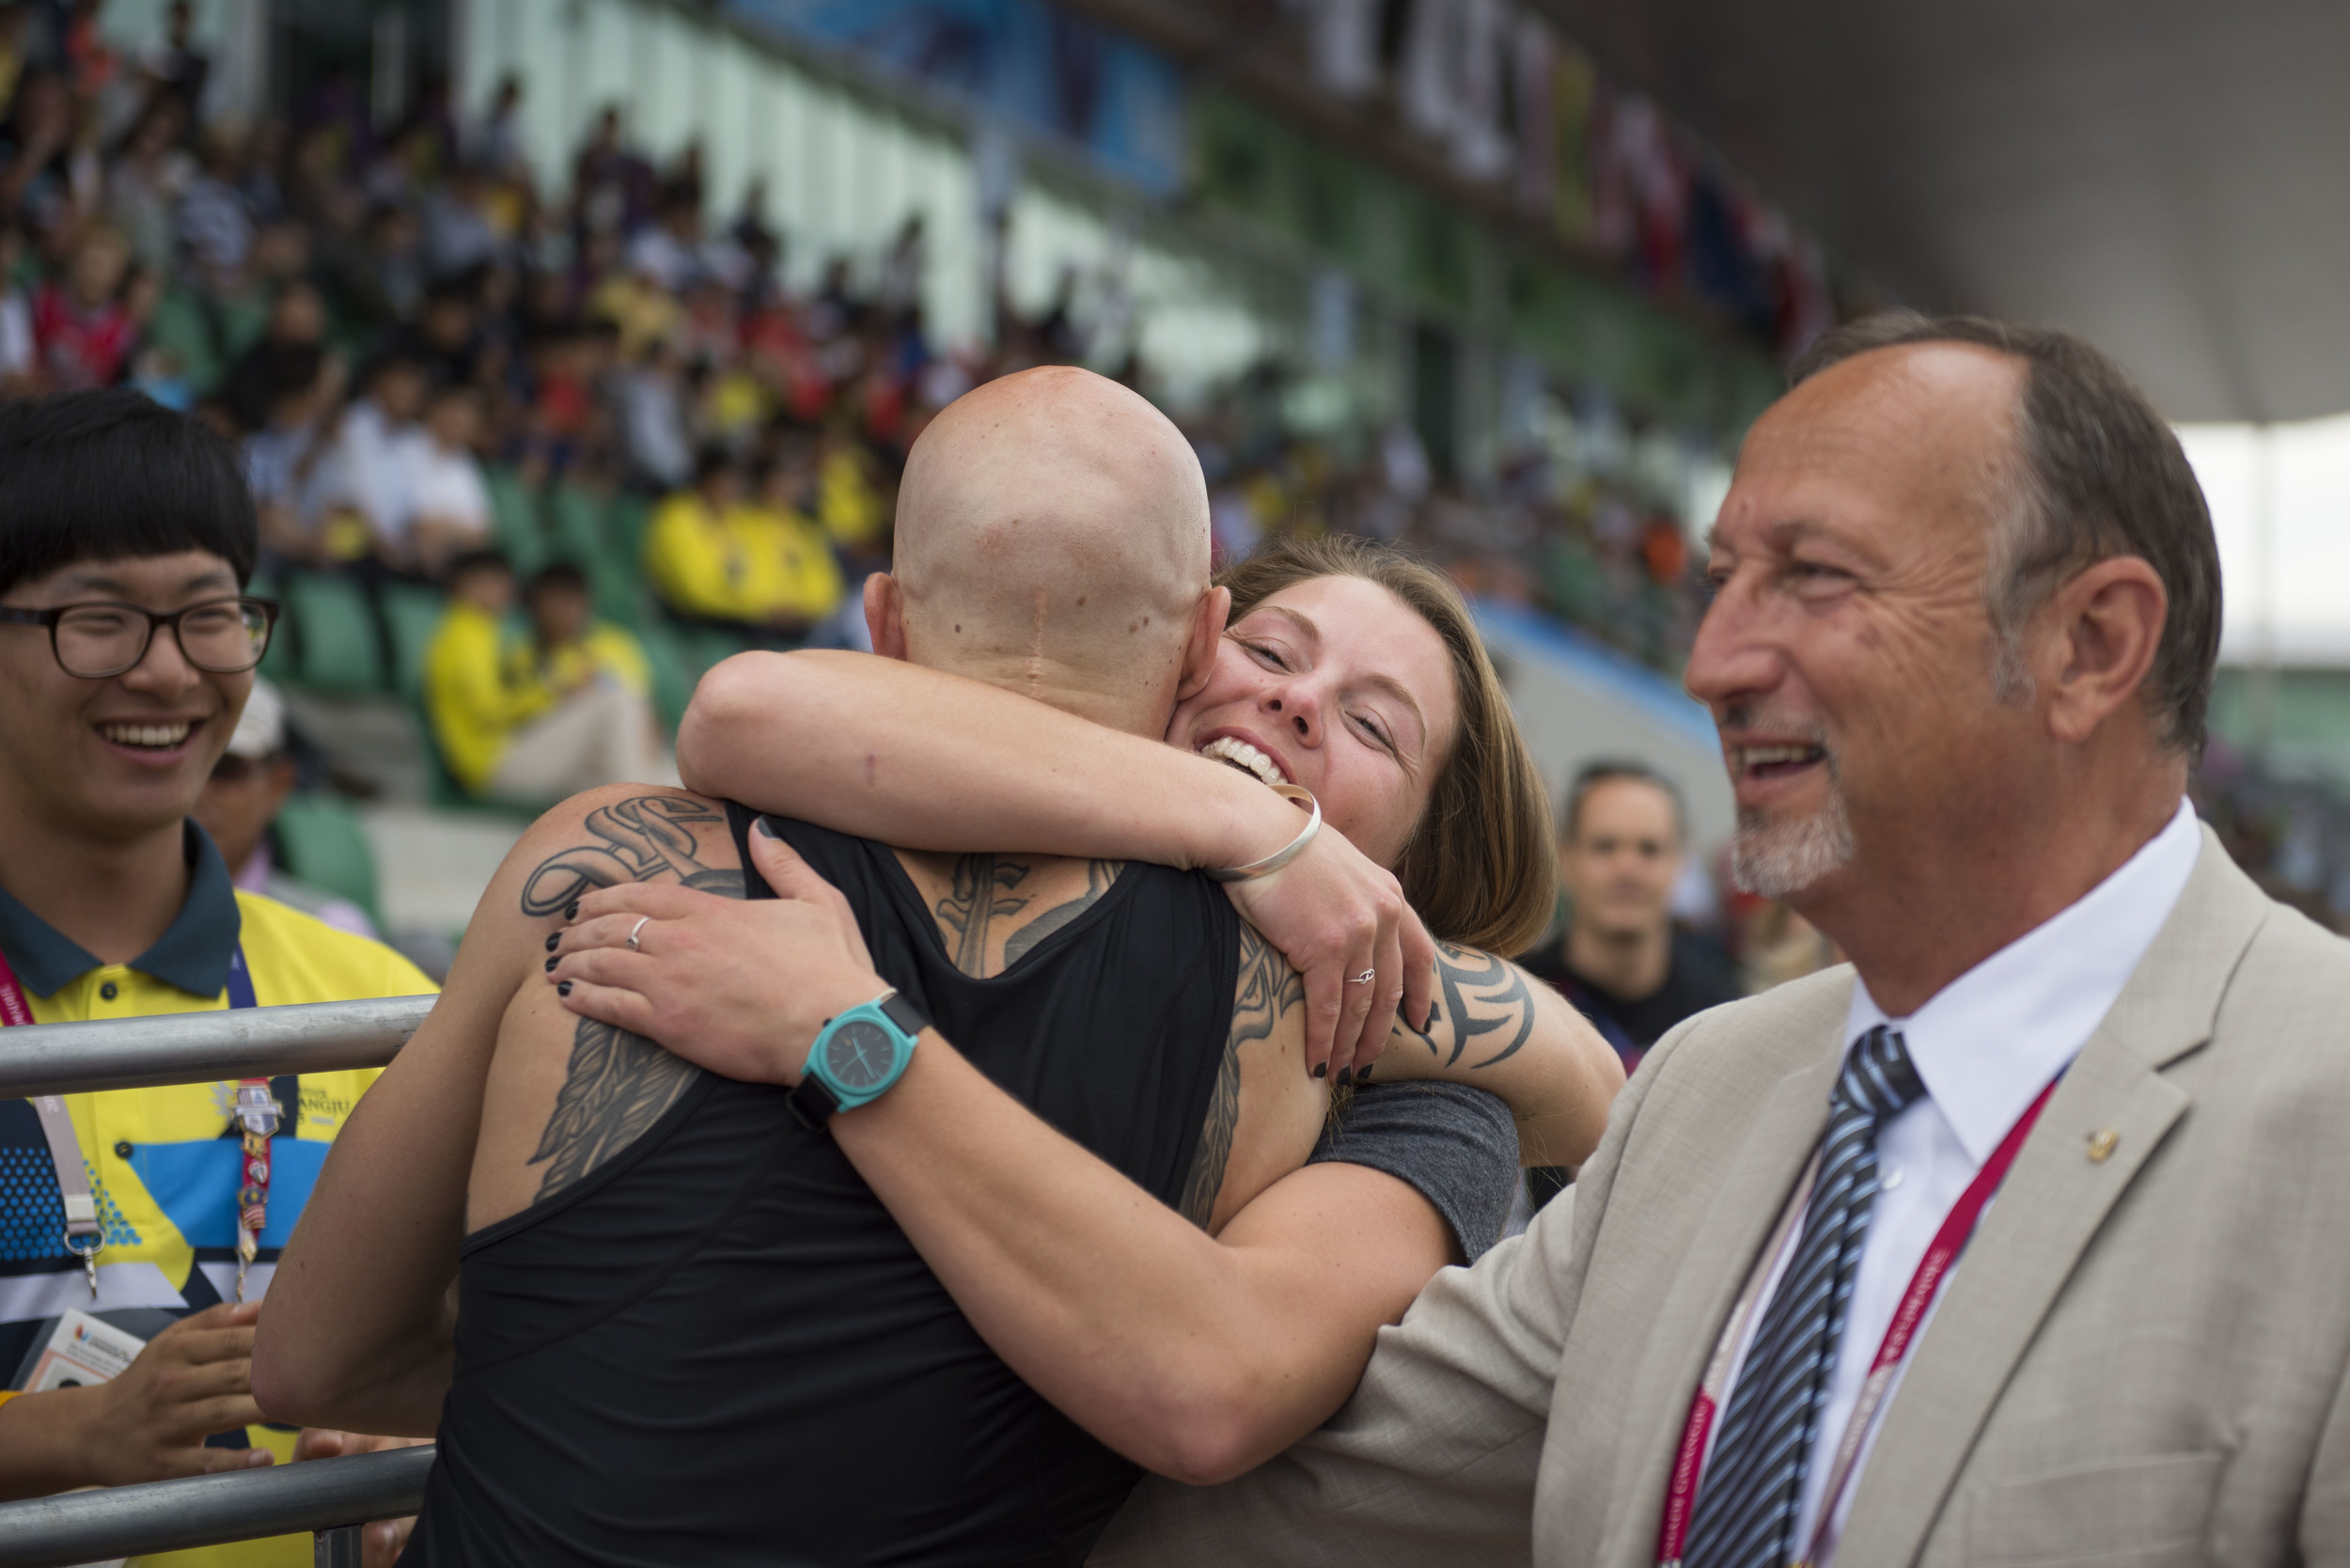 Toby Cunliffe-Steel - 2015 World University Games - A-Final - Photo © Rowing Celebration (7).jpg